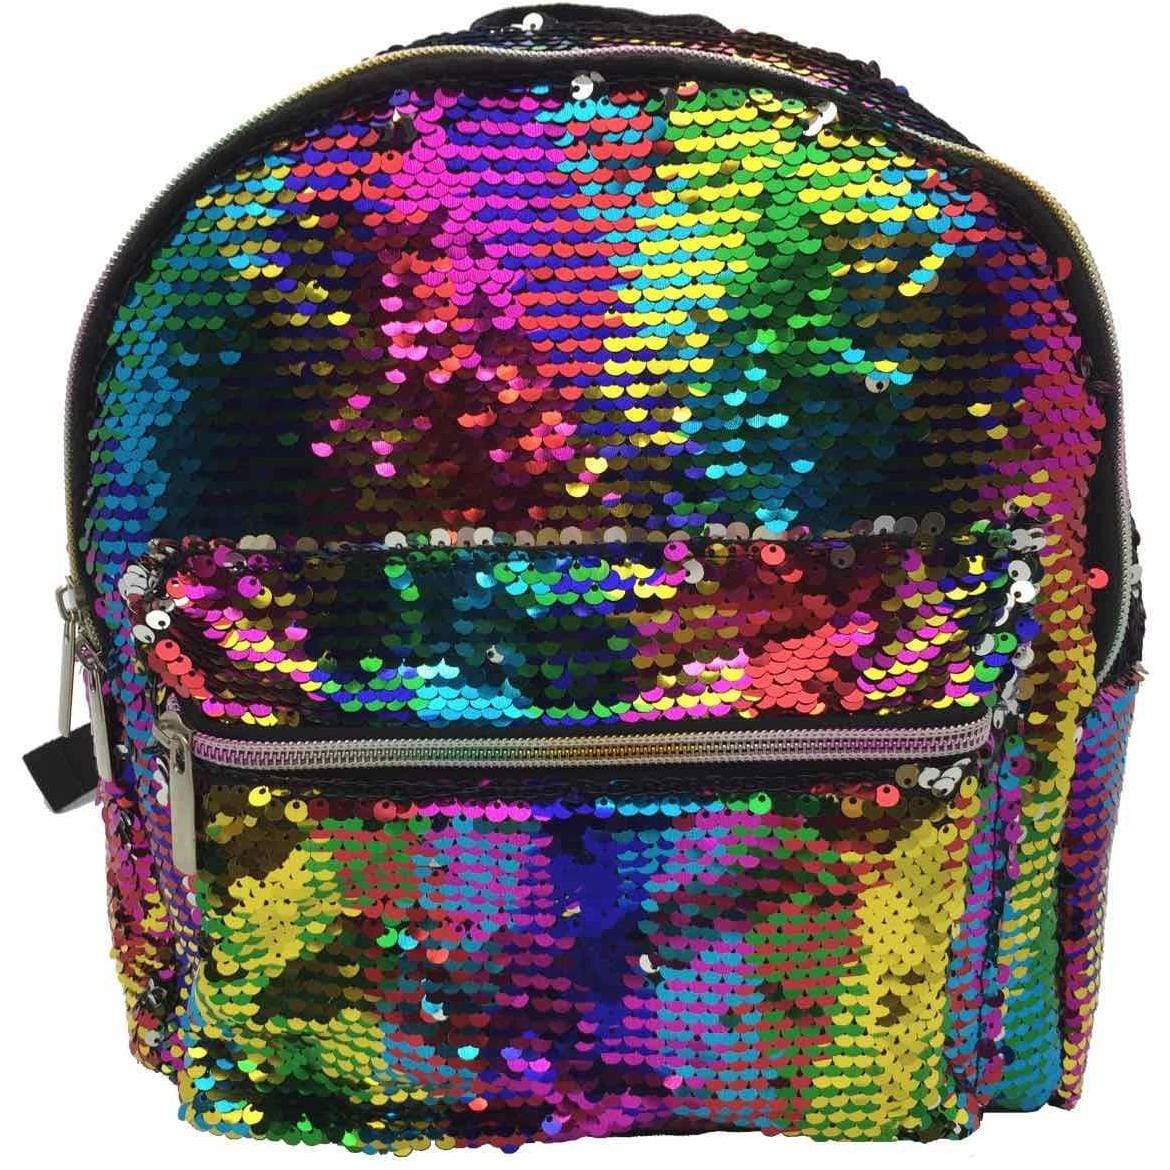 Rainbow Sequin Mini Backpack